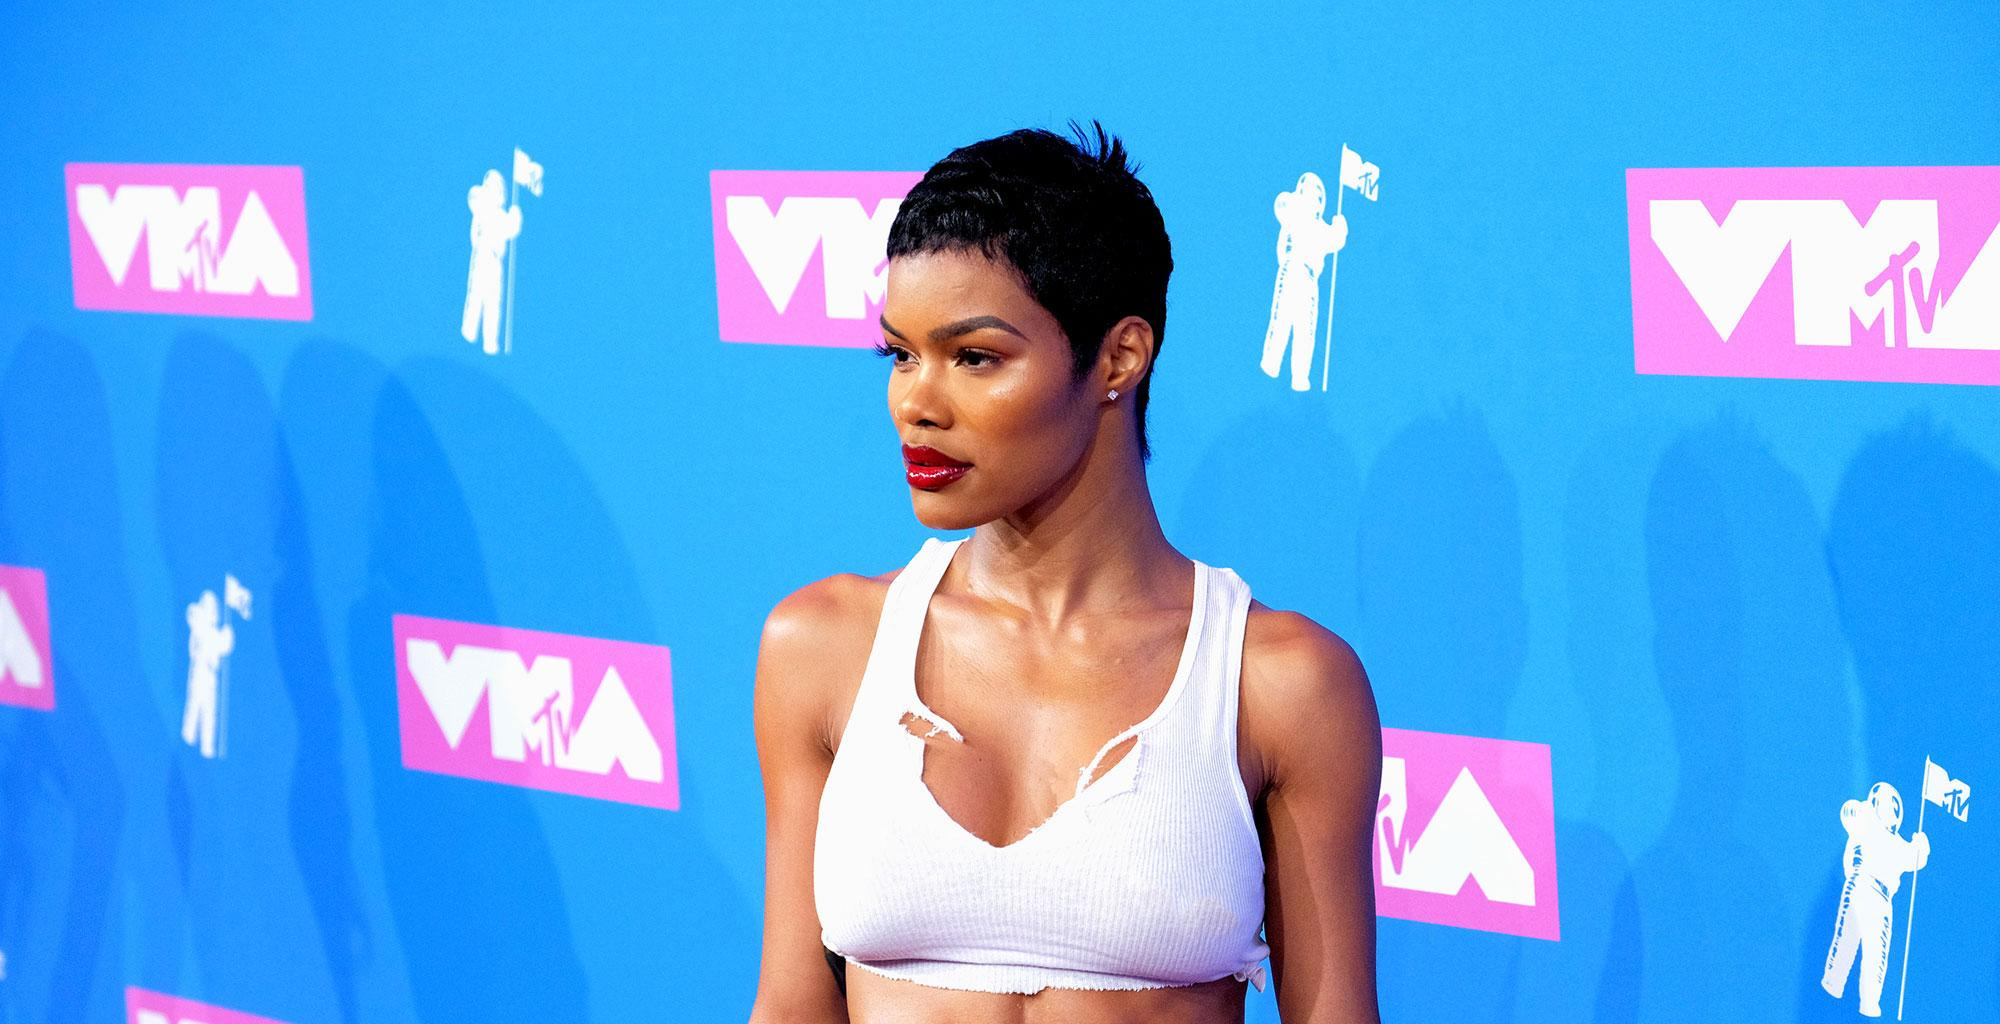 T.I. Supports Teyana Taylor And Promotes A Film That She Directed